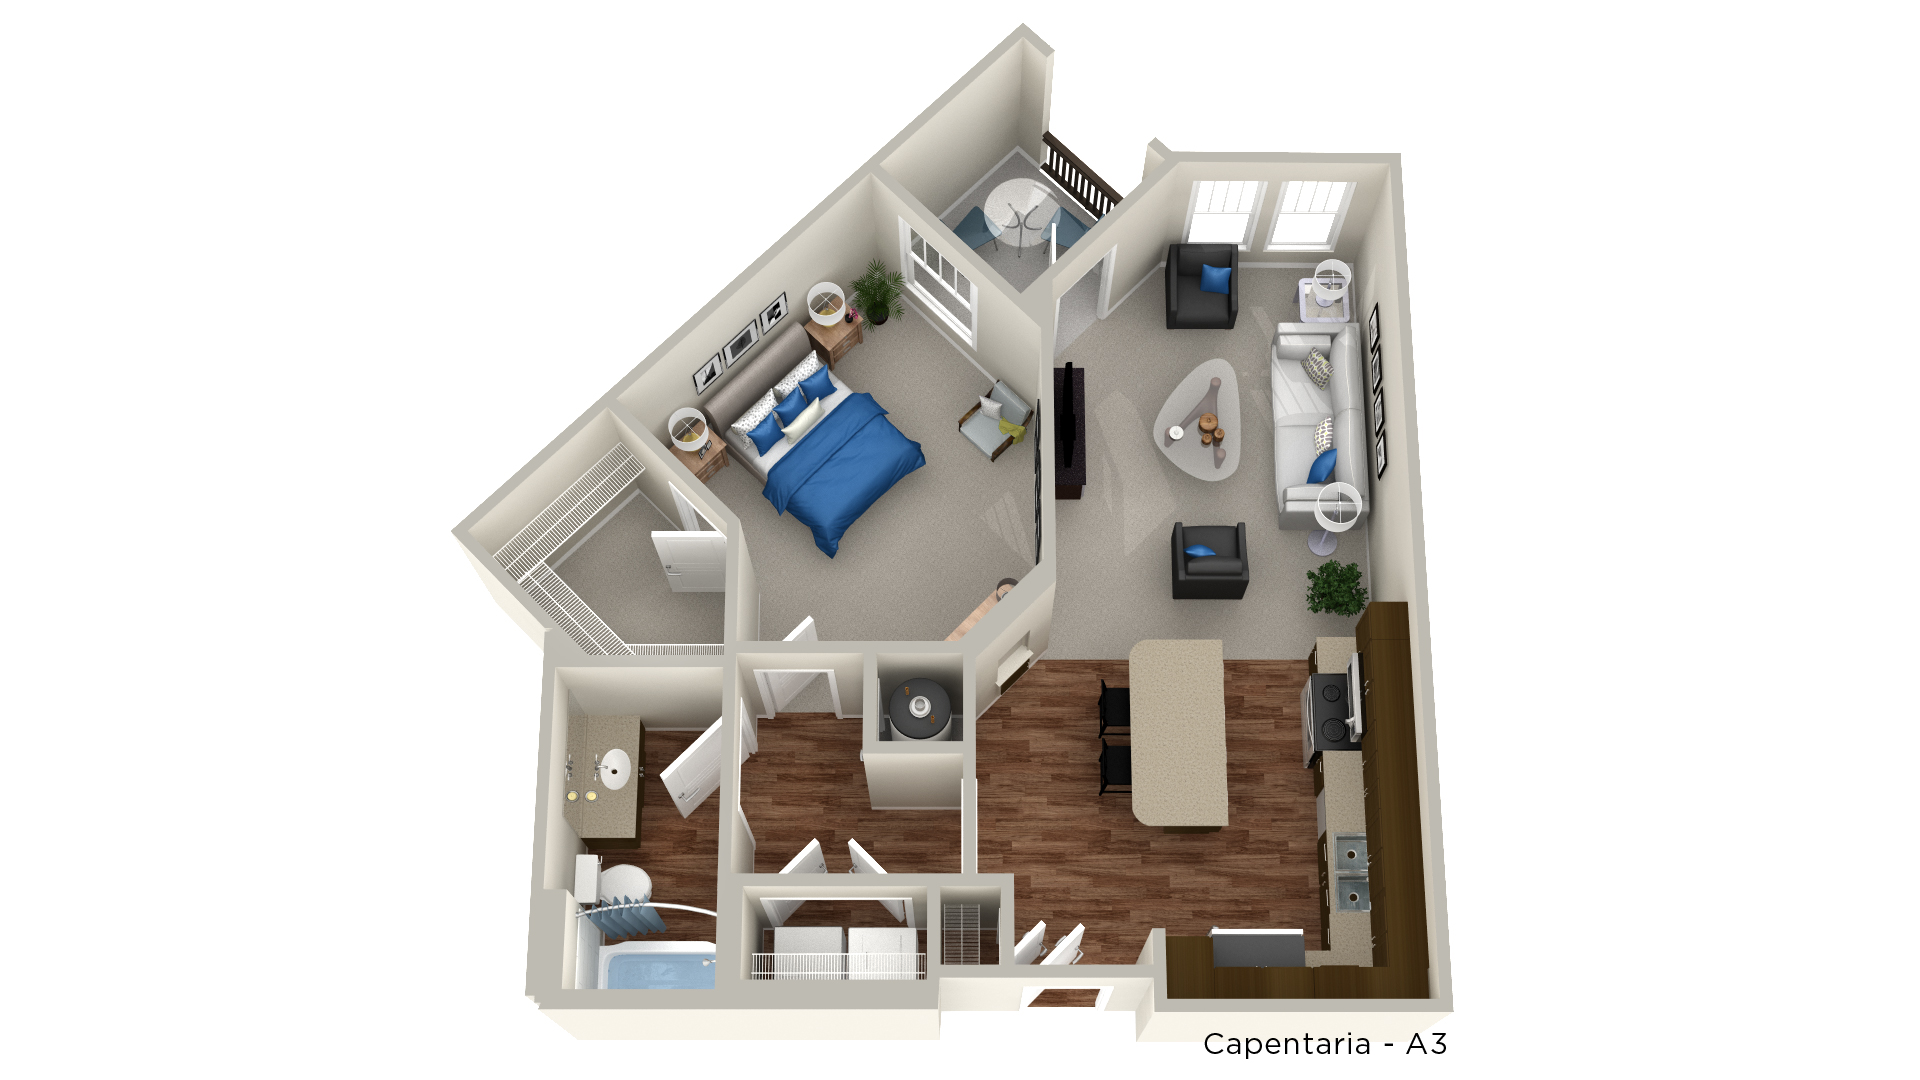 Whitepalm Luxury Apartment Homes - Floorplan - Capentaria